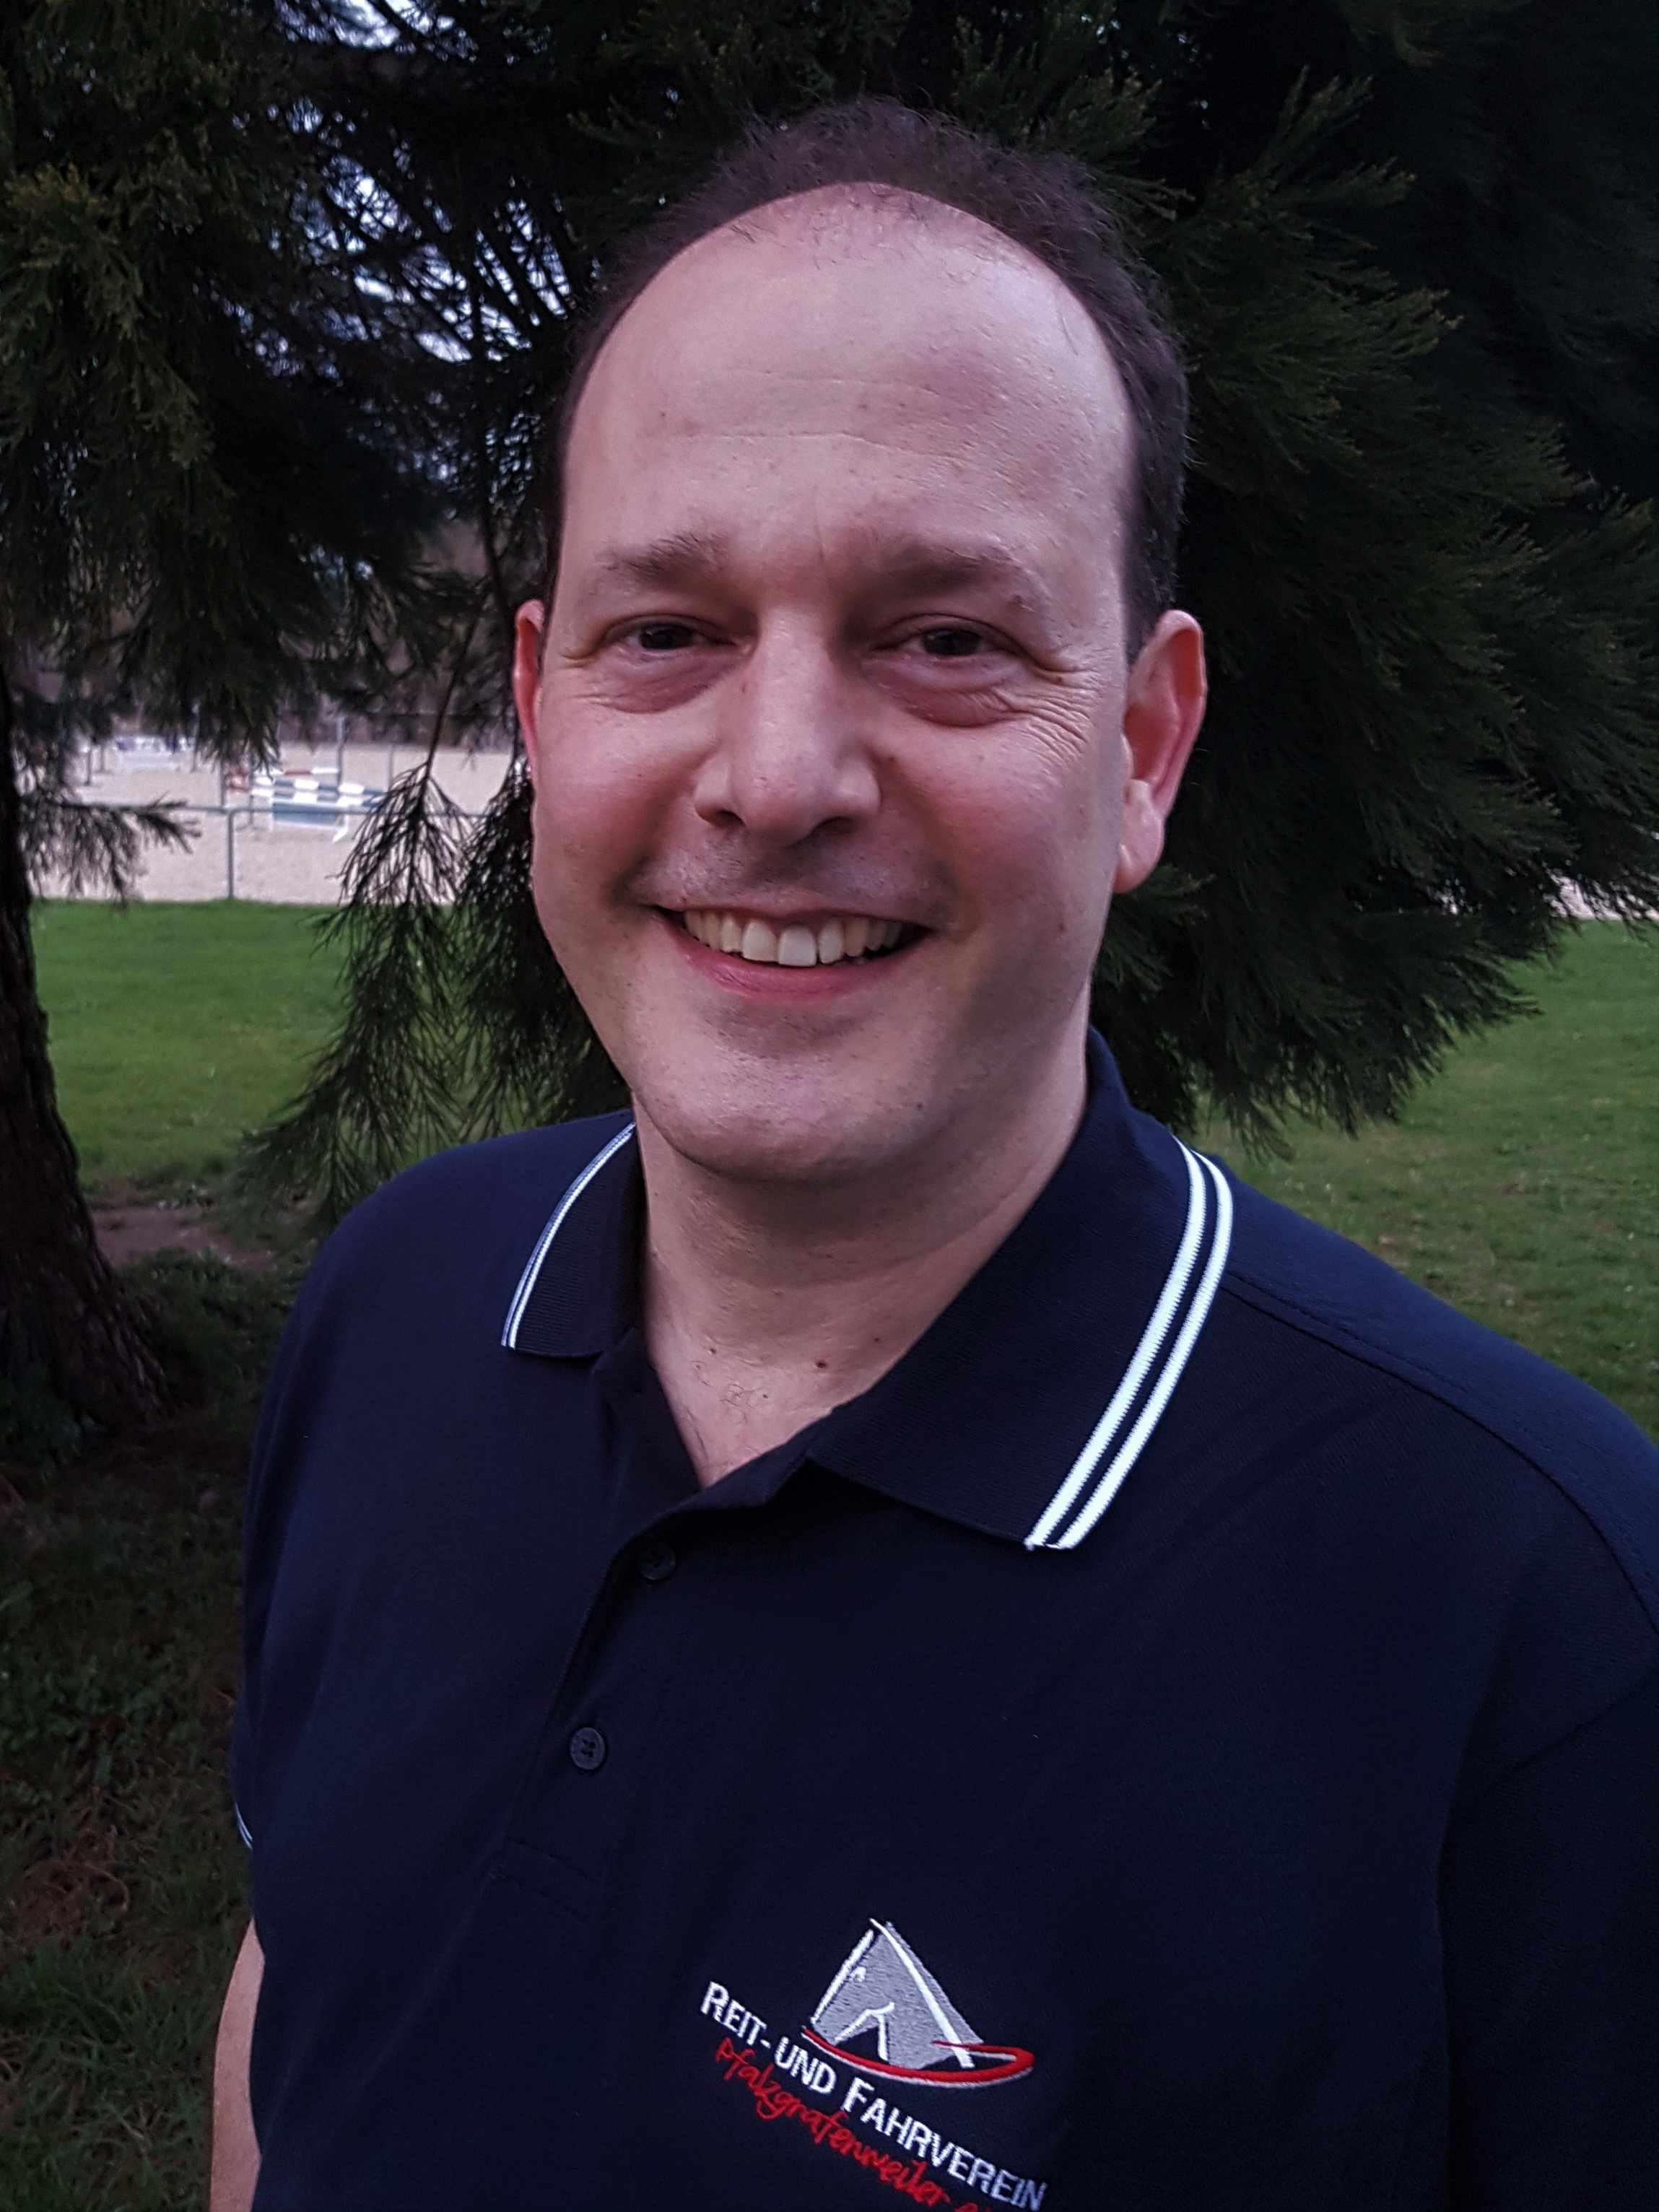 Dr. Andreas Kuner